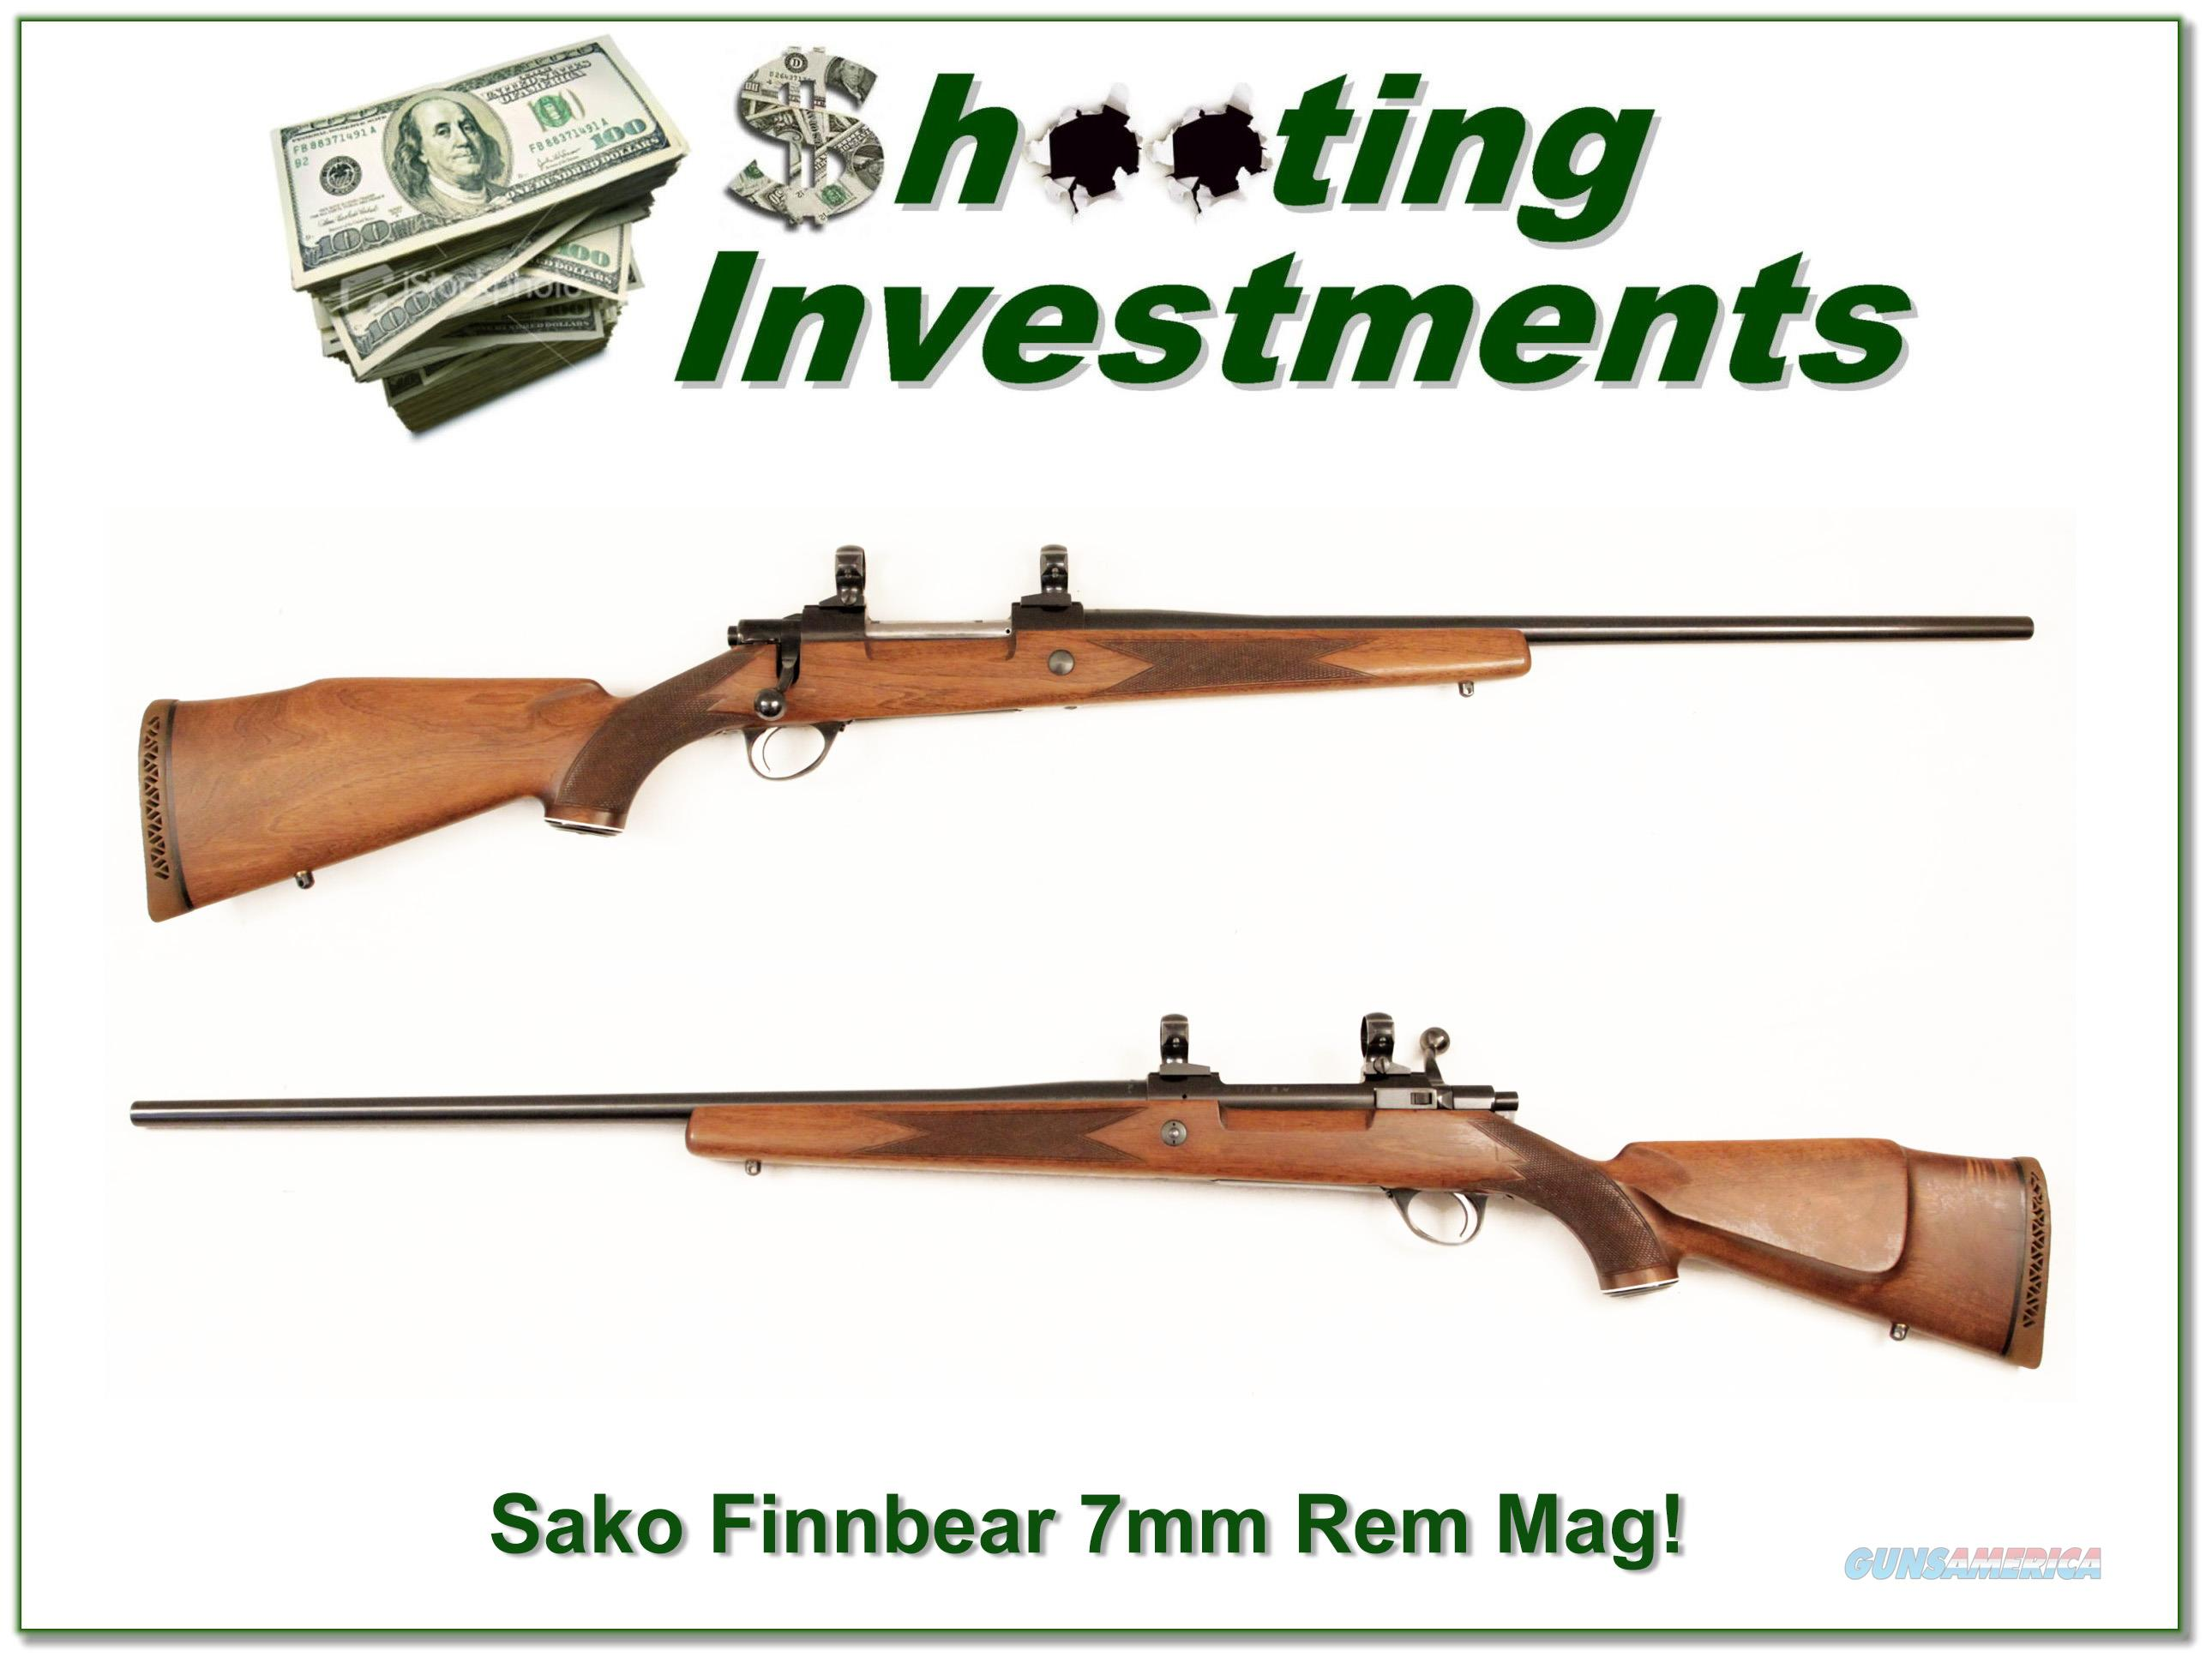 Sako L61R Finnbear 7mm Rem Mag nice!  Guns > Rifles > Sako Rifles > Other Bolt Action